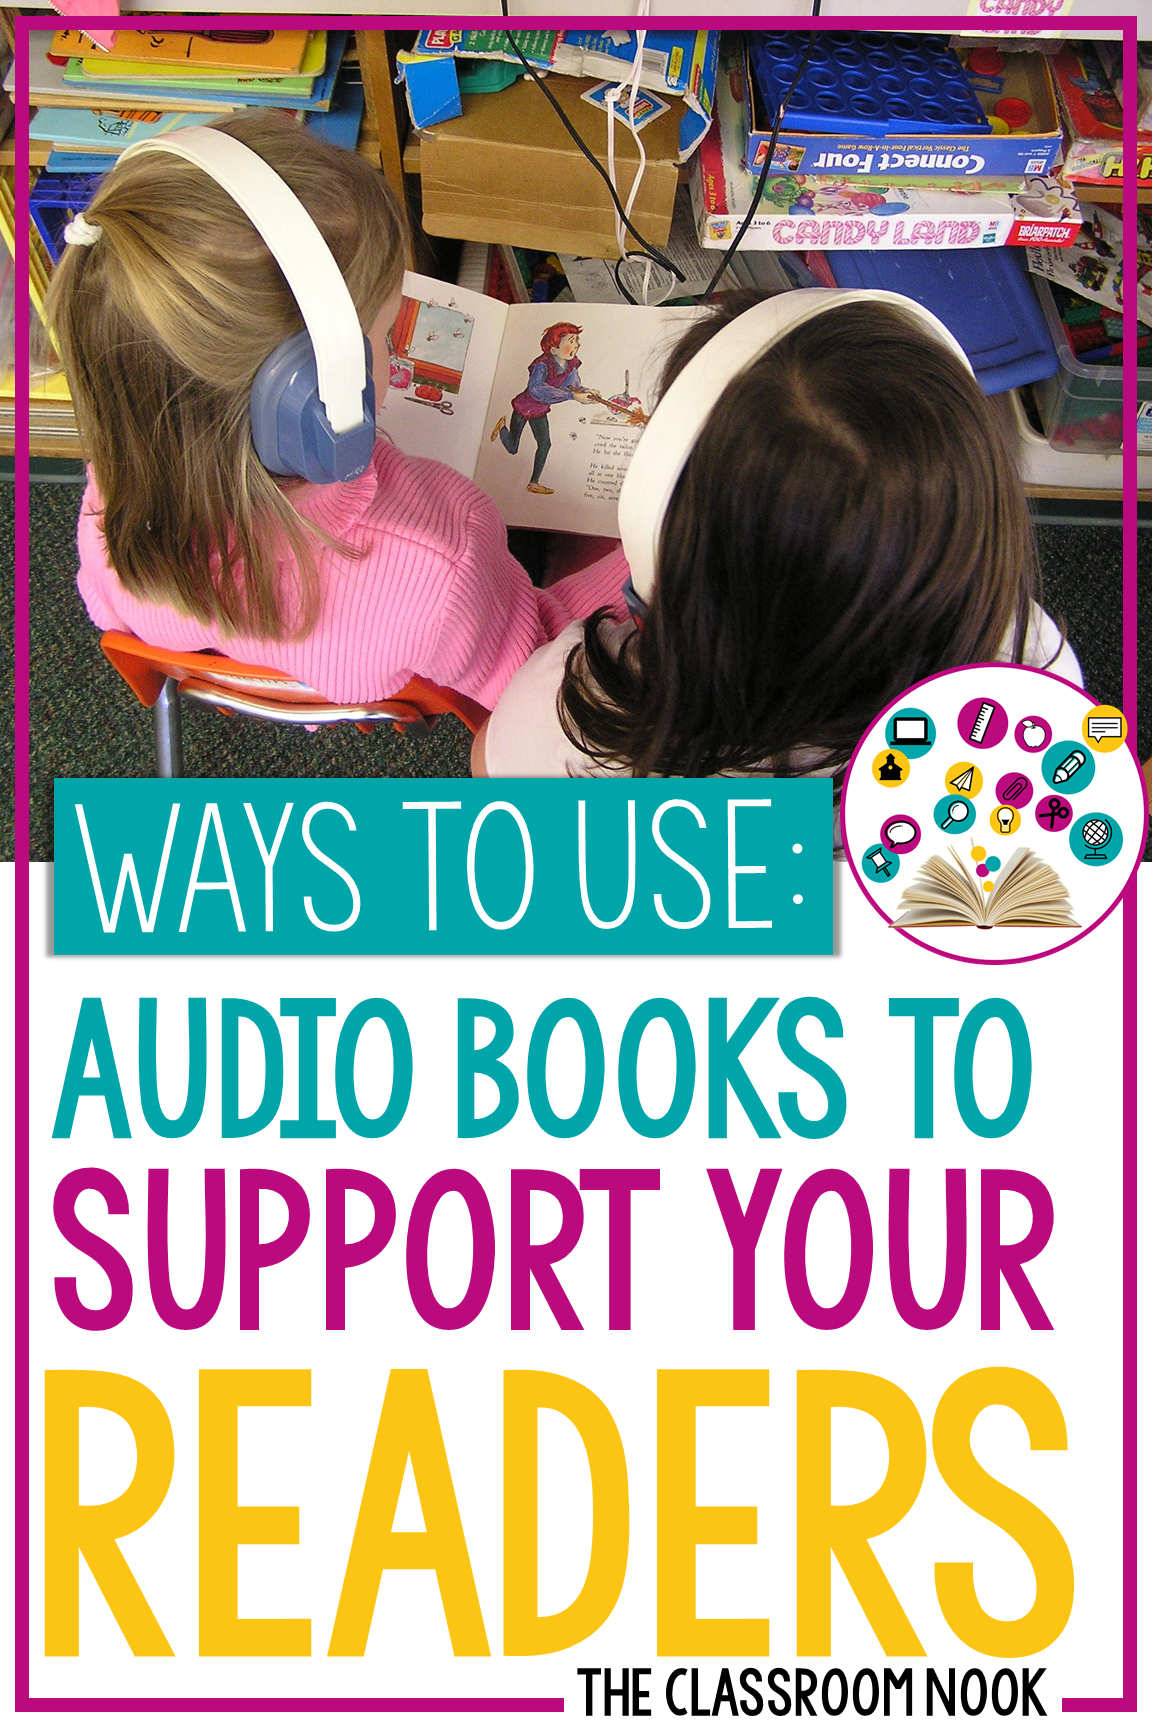 Audio books have become a great tool to use in the classroom for offering differentiated instruction, variety, and fun! In this post I'm going to share with you some of my most favorite ways to use audio books in your own classroom and how making your own audio books is surprisingly easy! I'll walk you through a few simple steps to how you can customize your own audio book library!